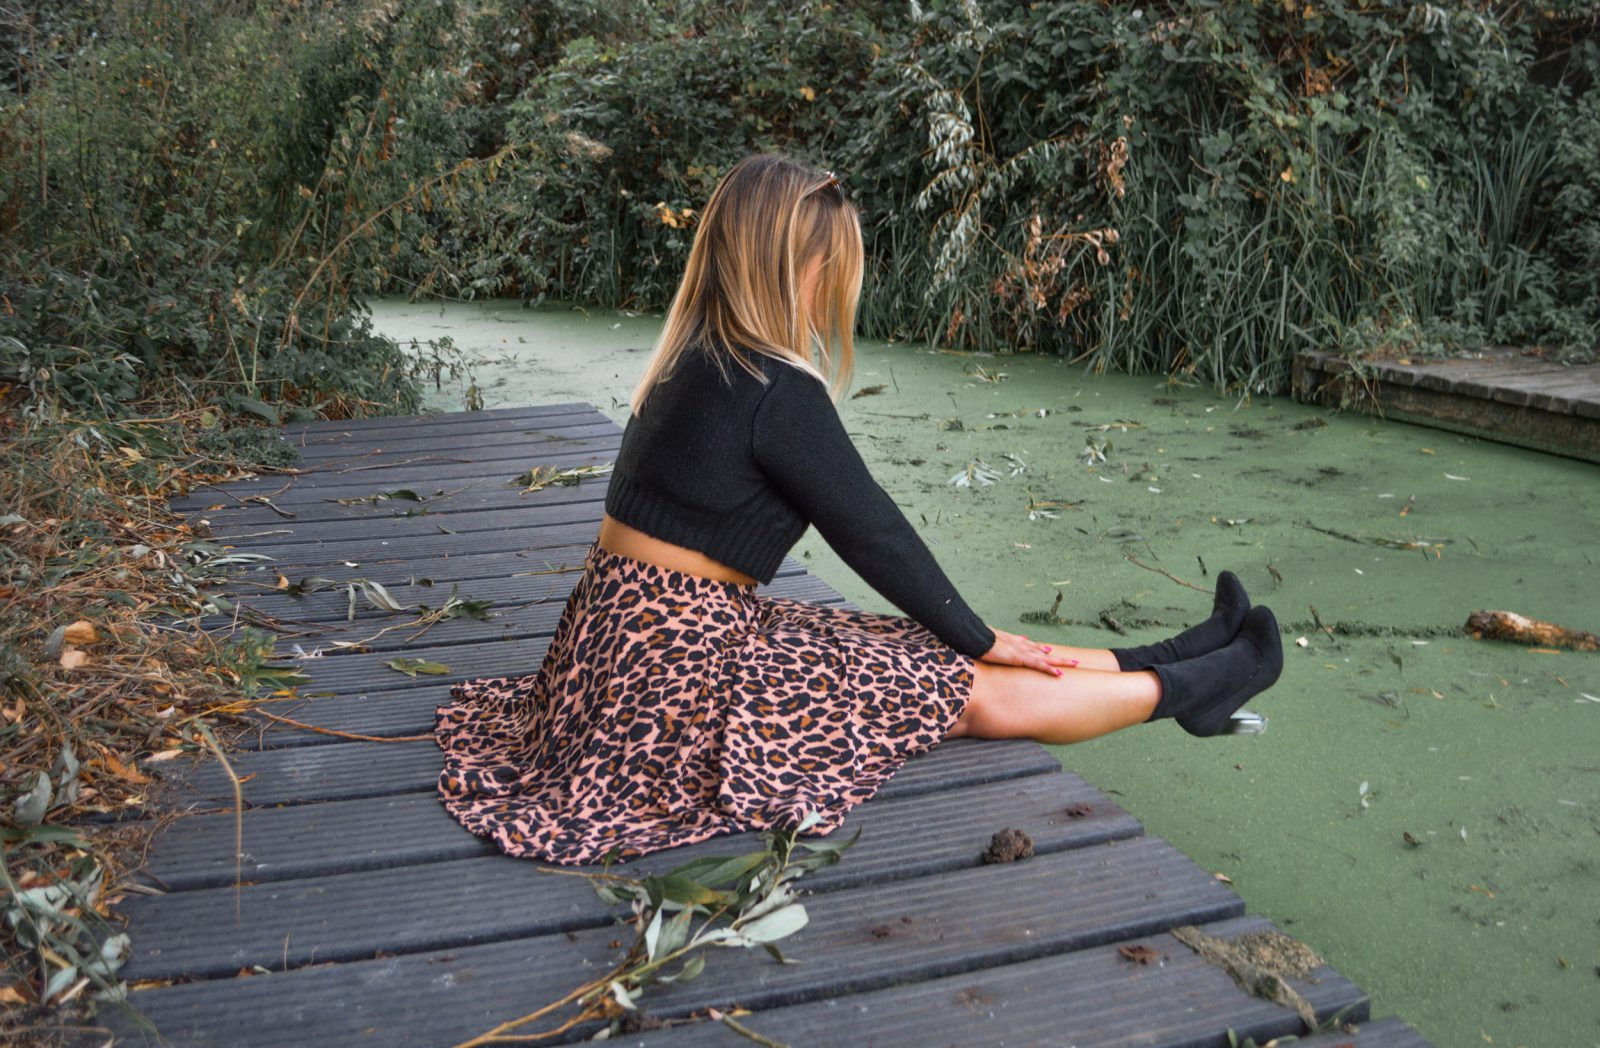 Hannah sitting by river wearing leopard print skirt and black turtleneck knit.